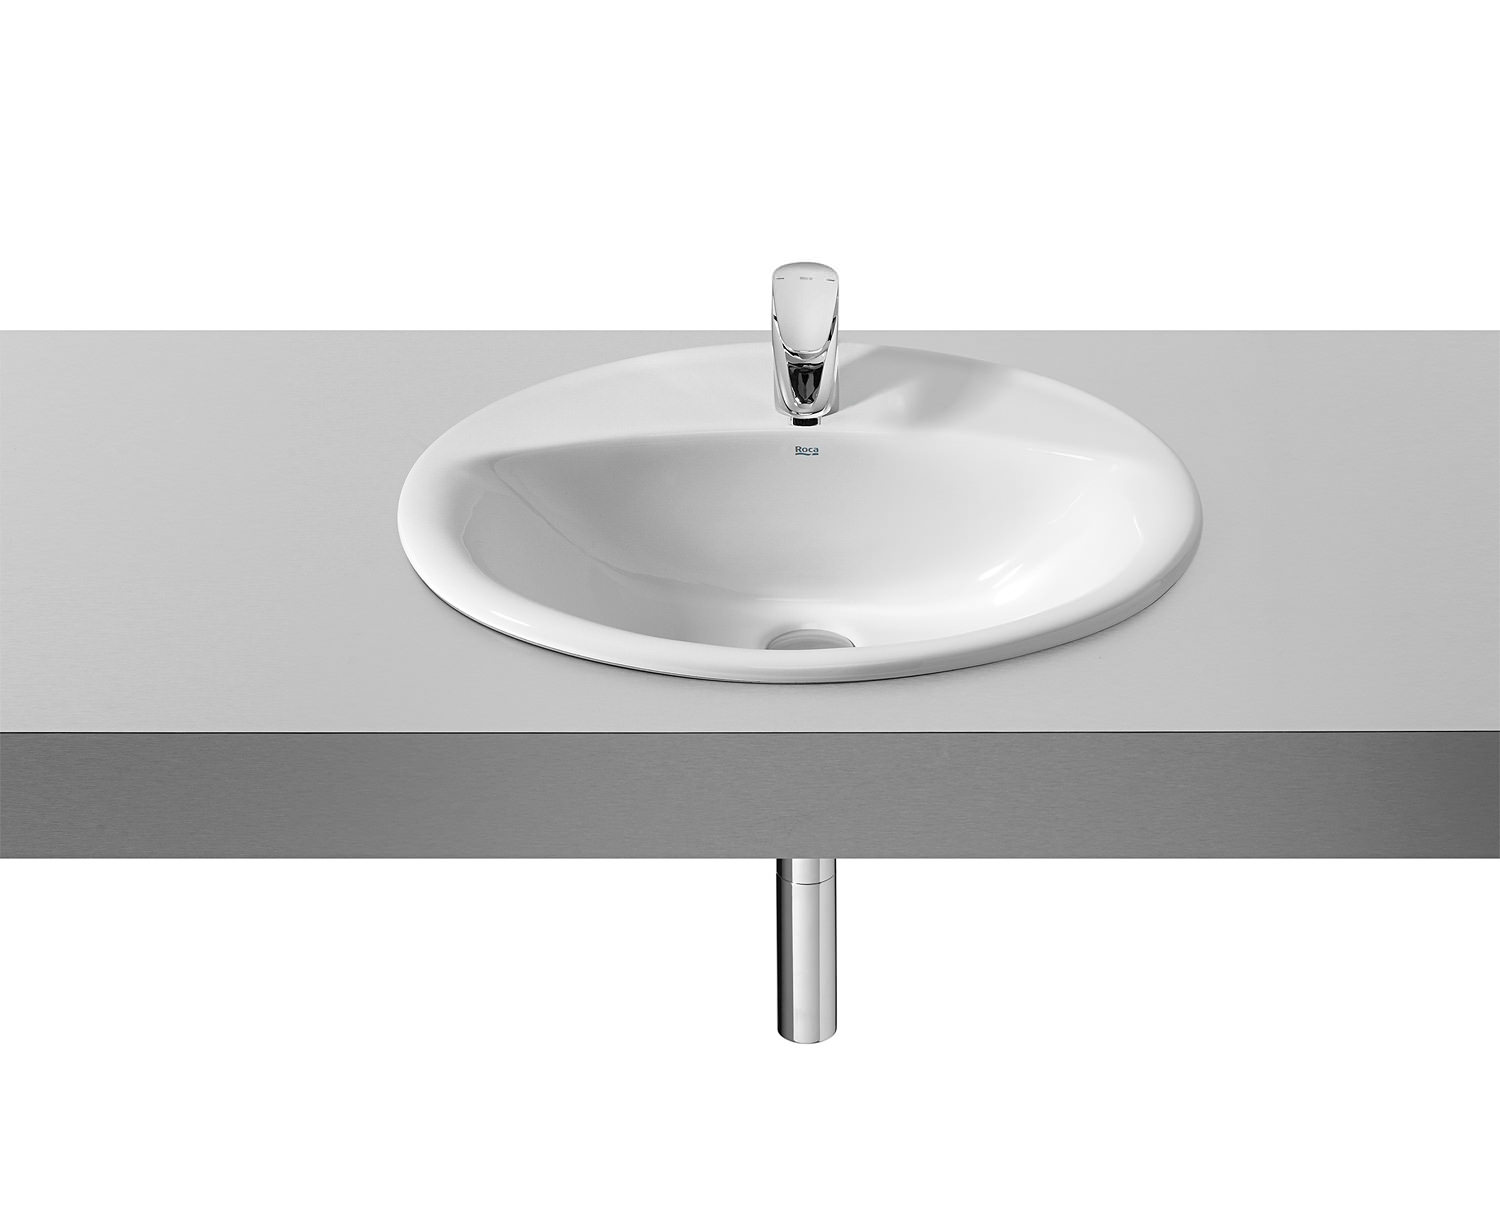 roca java white in countertop basin 560 x 475mm - Roca Wash Basin